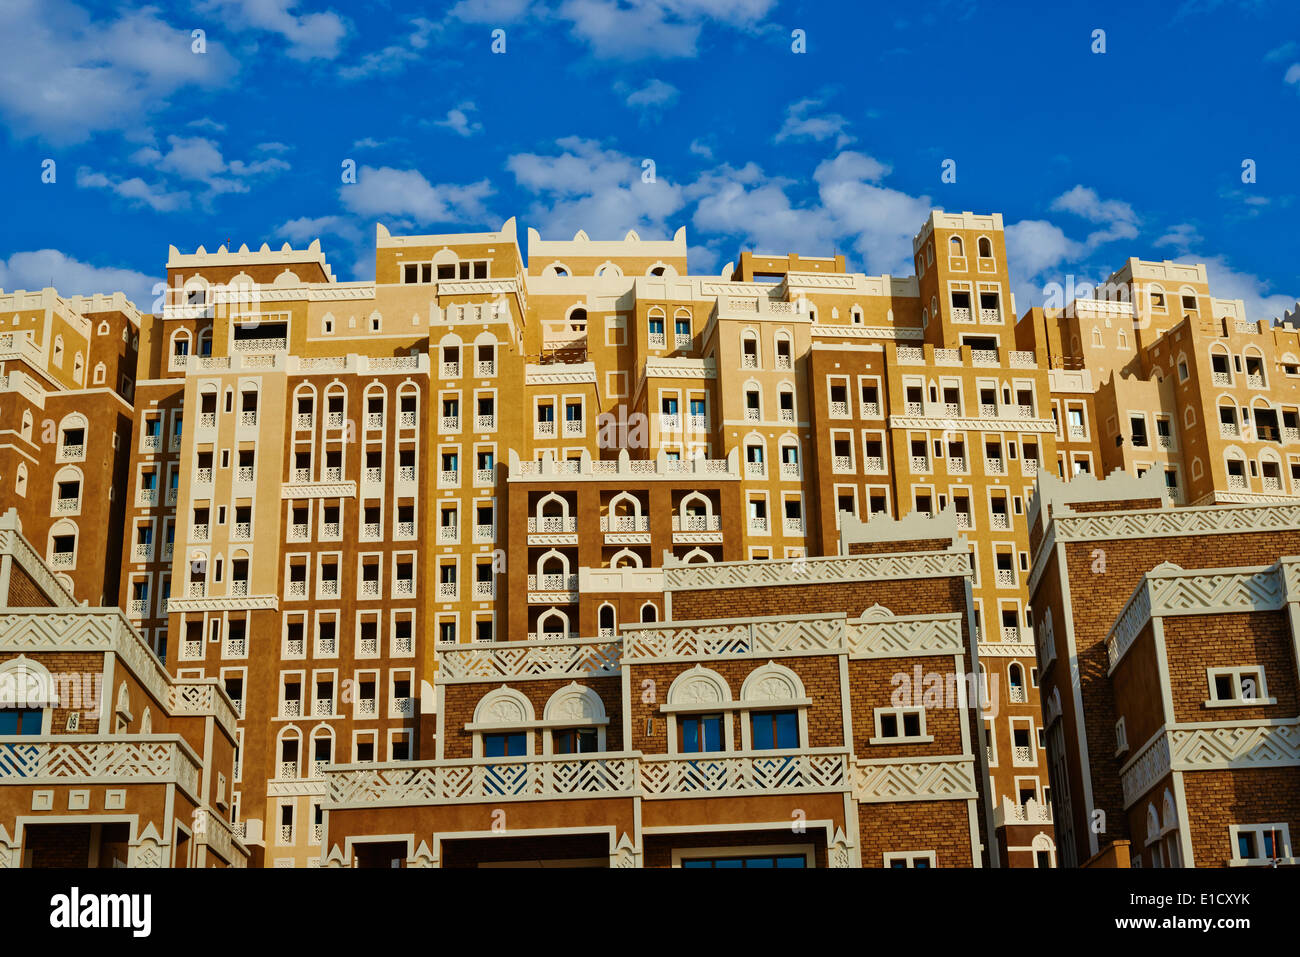 United Arab Emirates, Dubai, the Palm Jumeirah, building with Yemen style of architecture Stock Photo